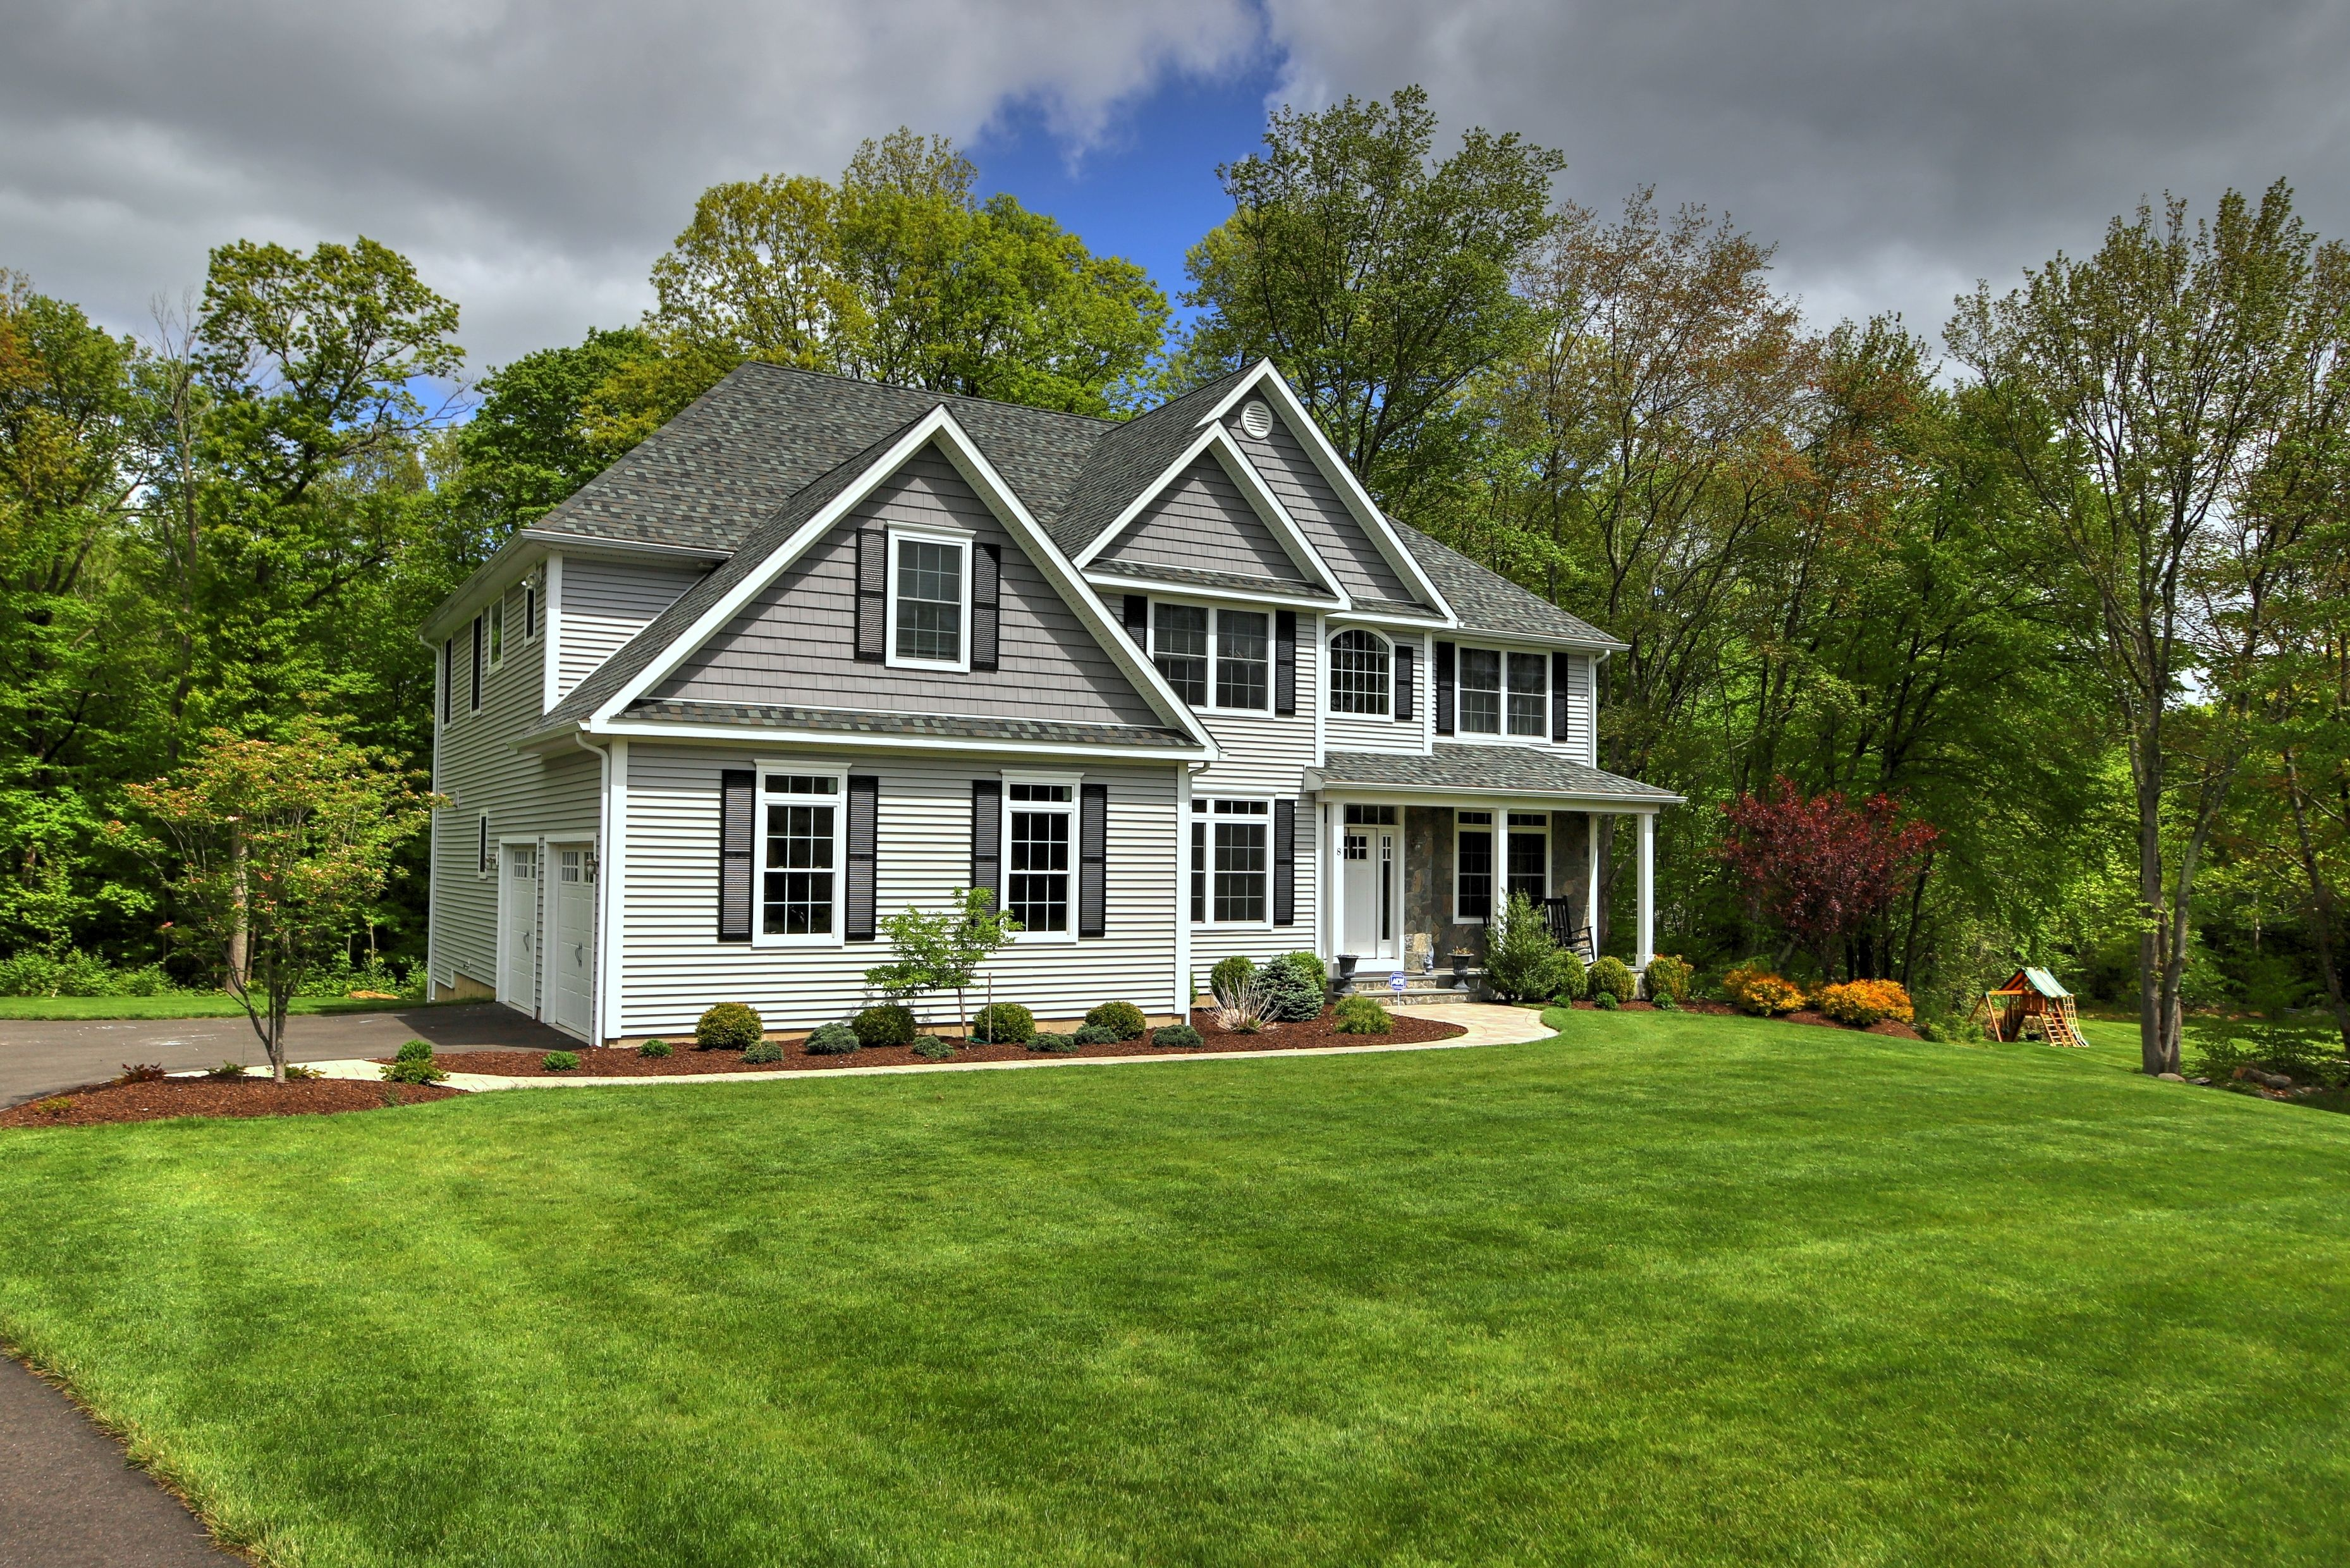 3000 sq ft. colonial house remodel